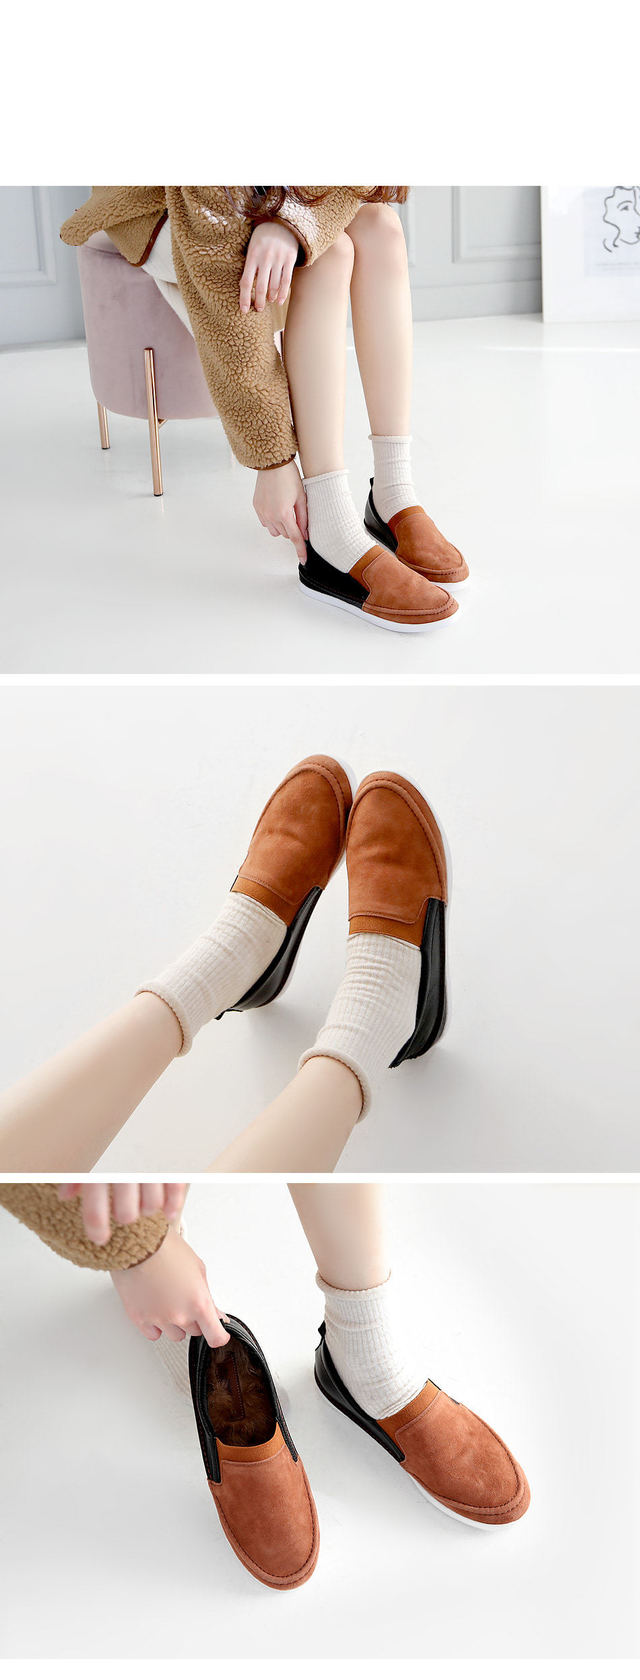 The slip-on height is 2.5cm